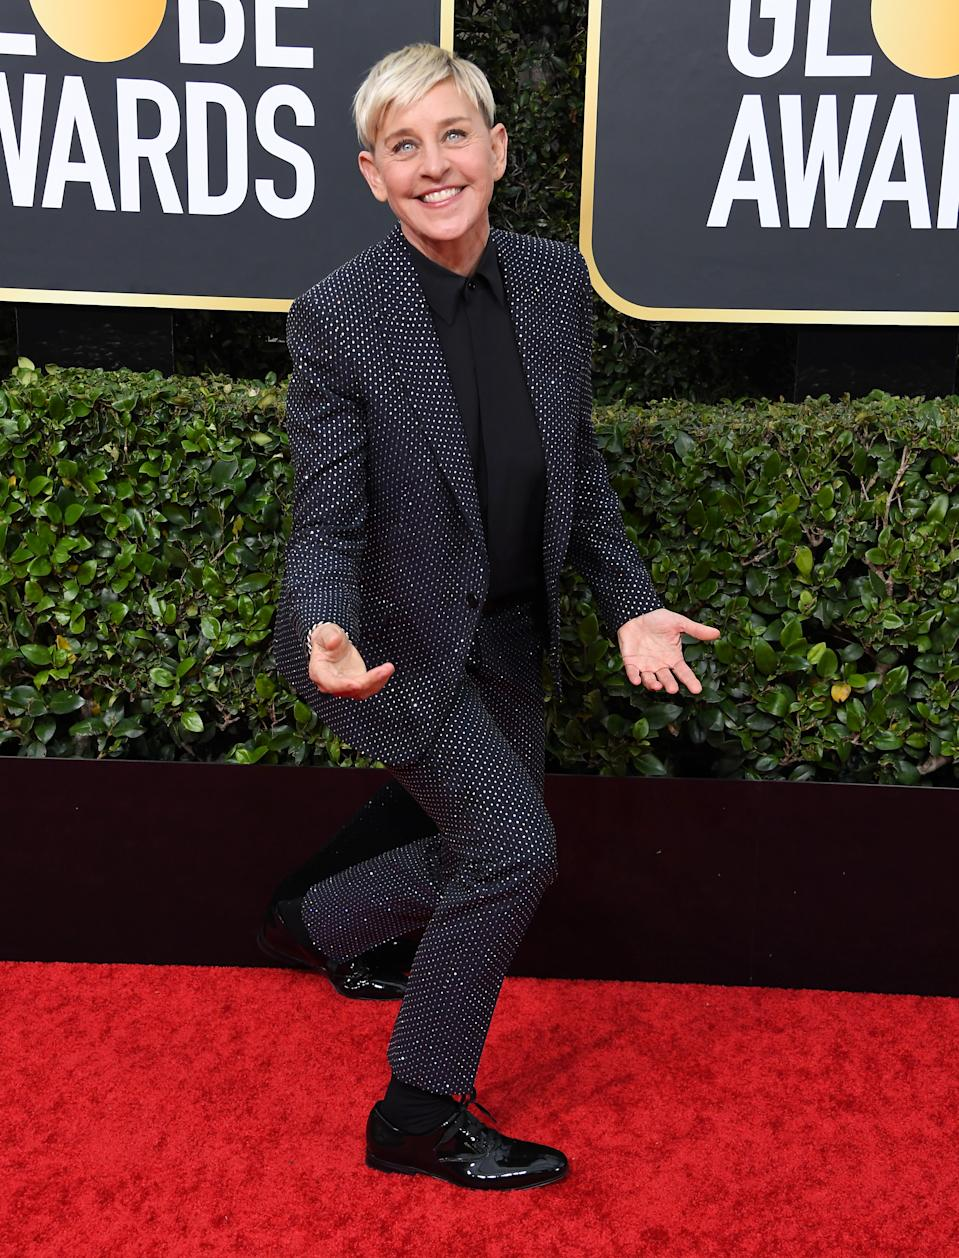 Ellen DeGeneres arrives at the 77th Annual Golden Globe Awards attends the 77th Annual Golden Globe Awards at The Beverly Hilton Hotel on January 05, 2020 in Beverly Hills, California. (Photo by Steve Granitz/WireImage)